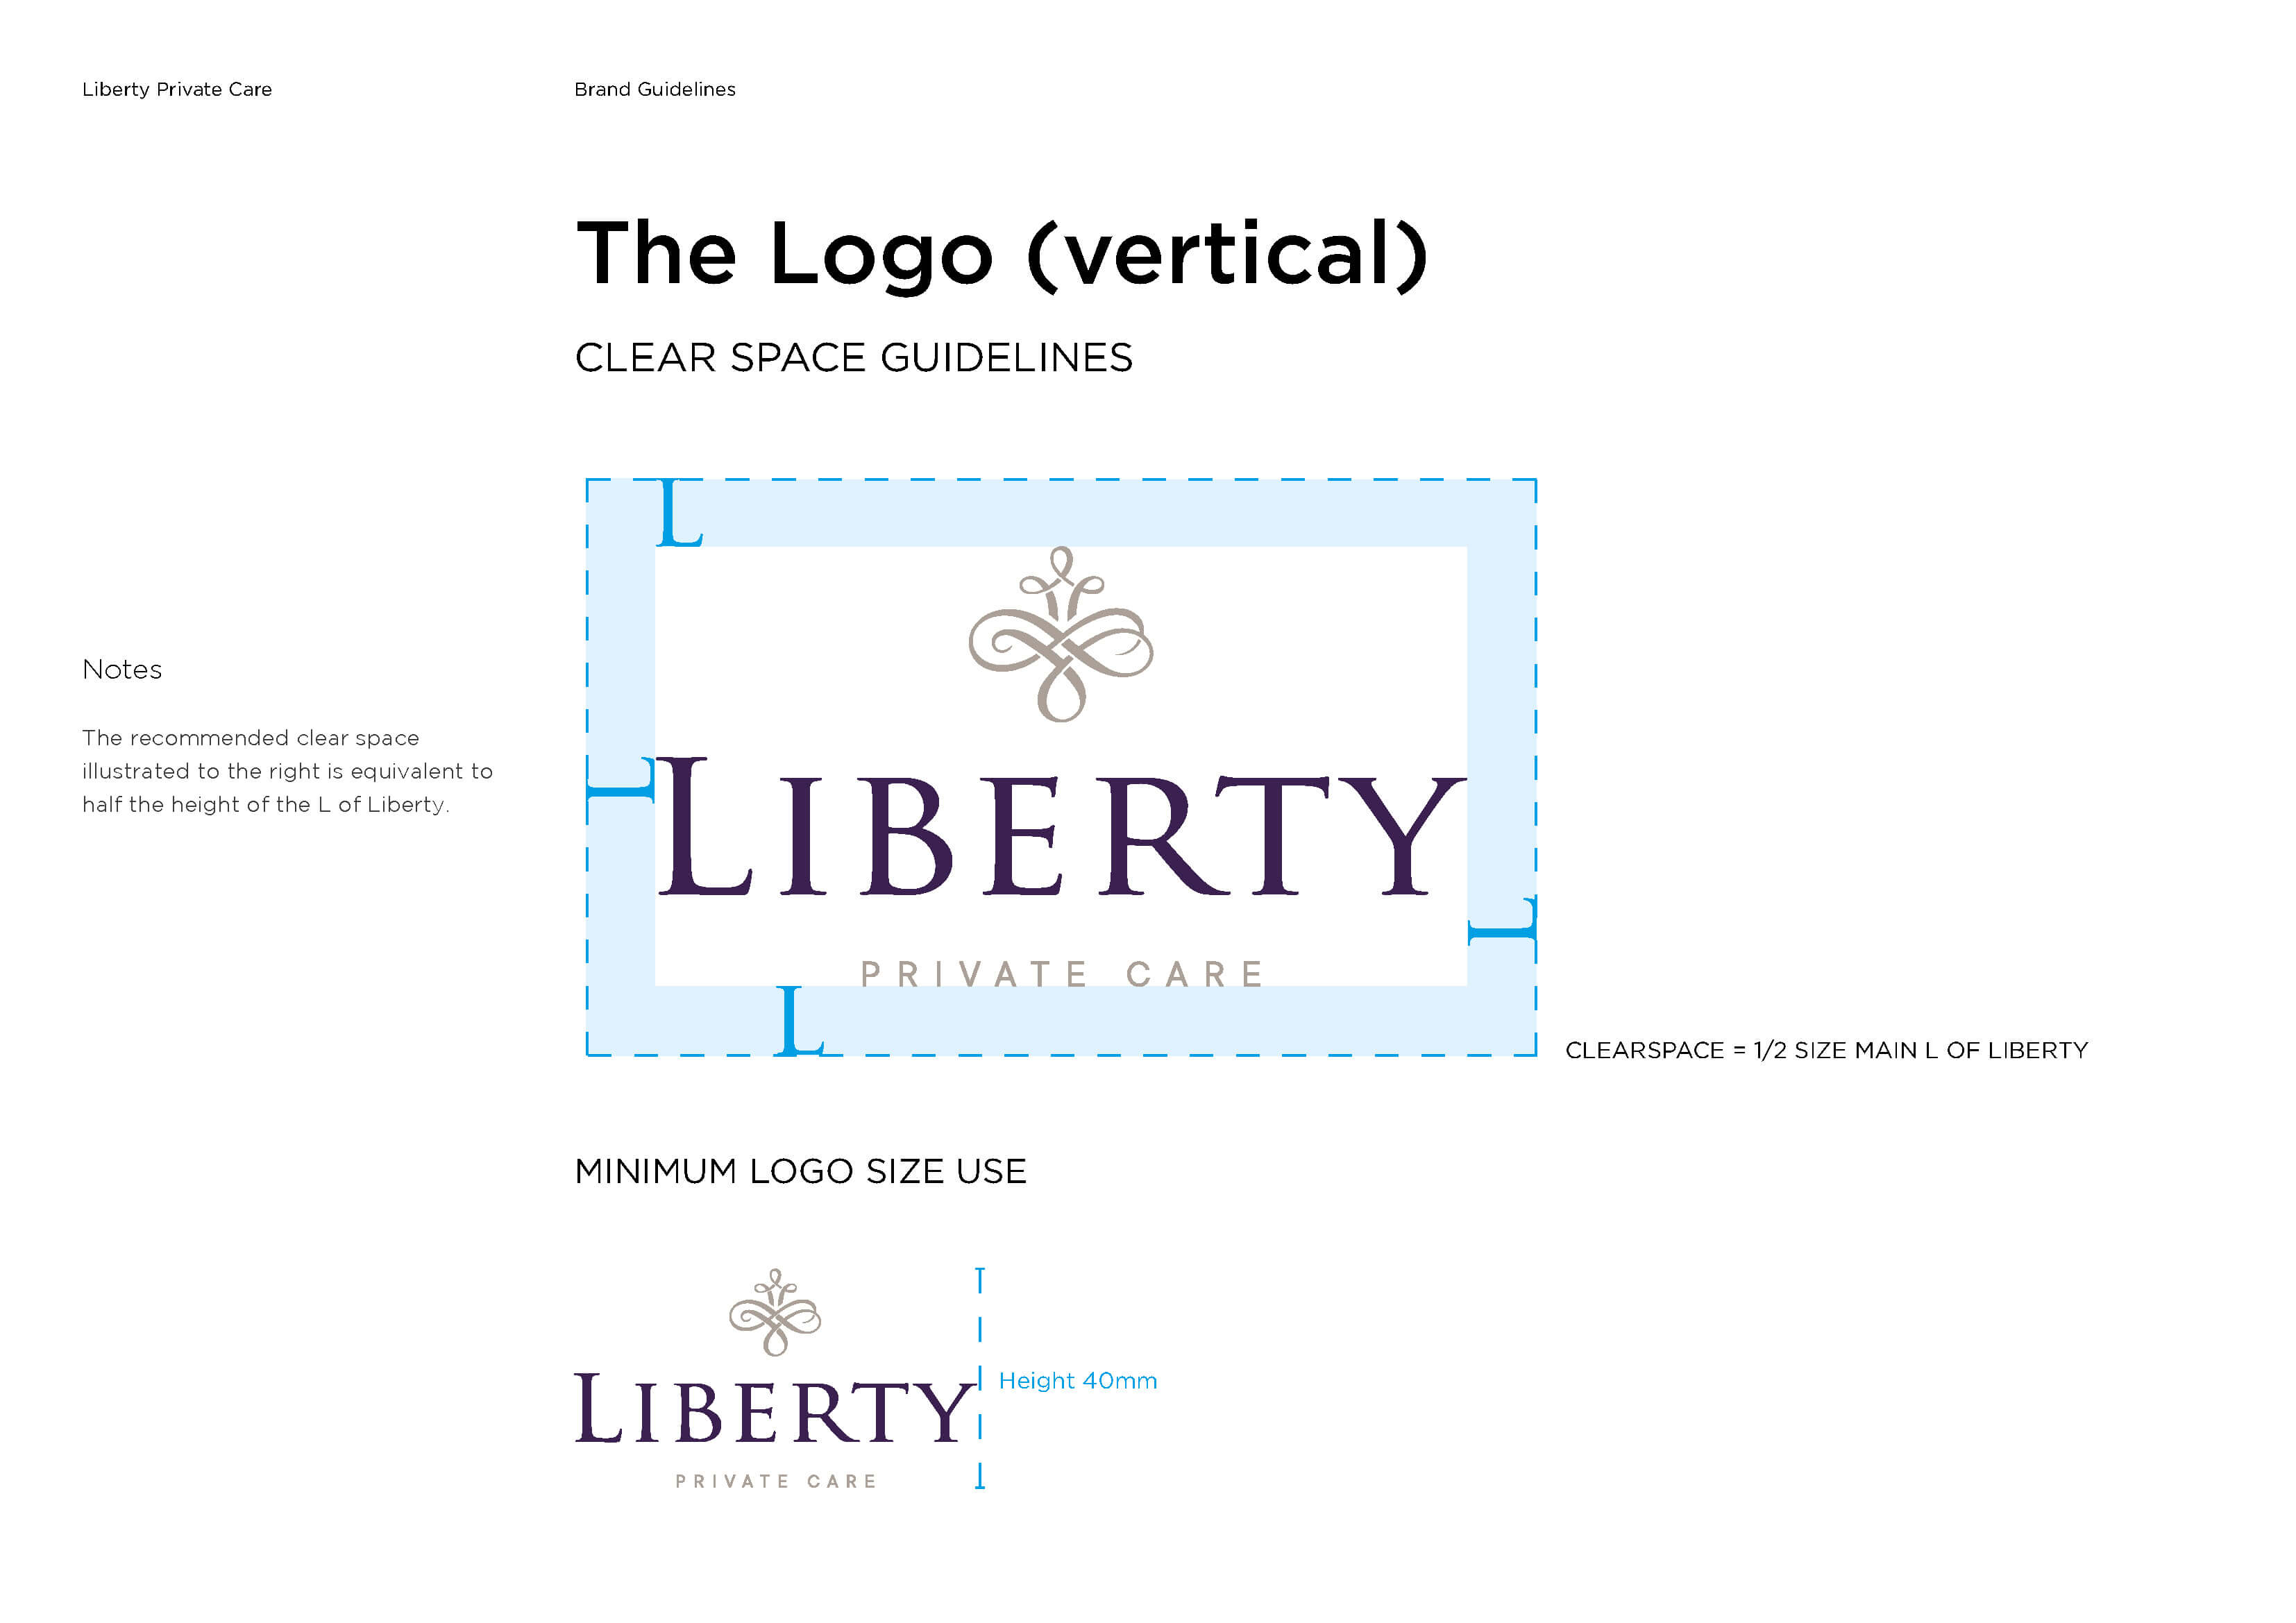 Liberty Private Care Brand Guidelines